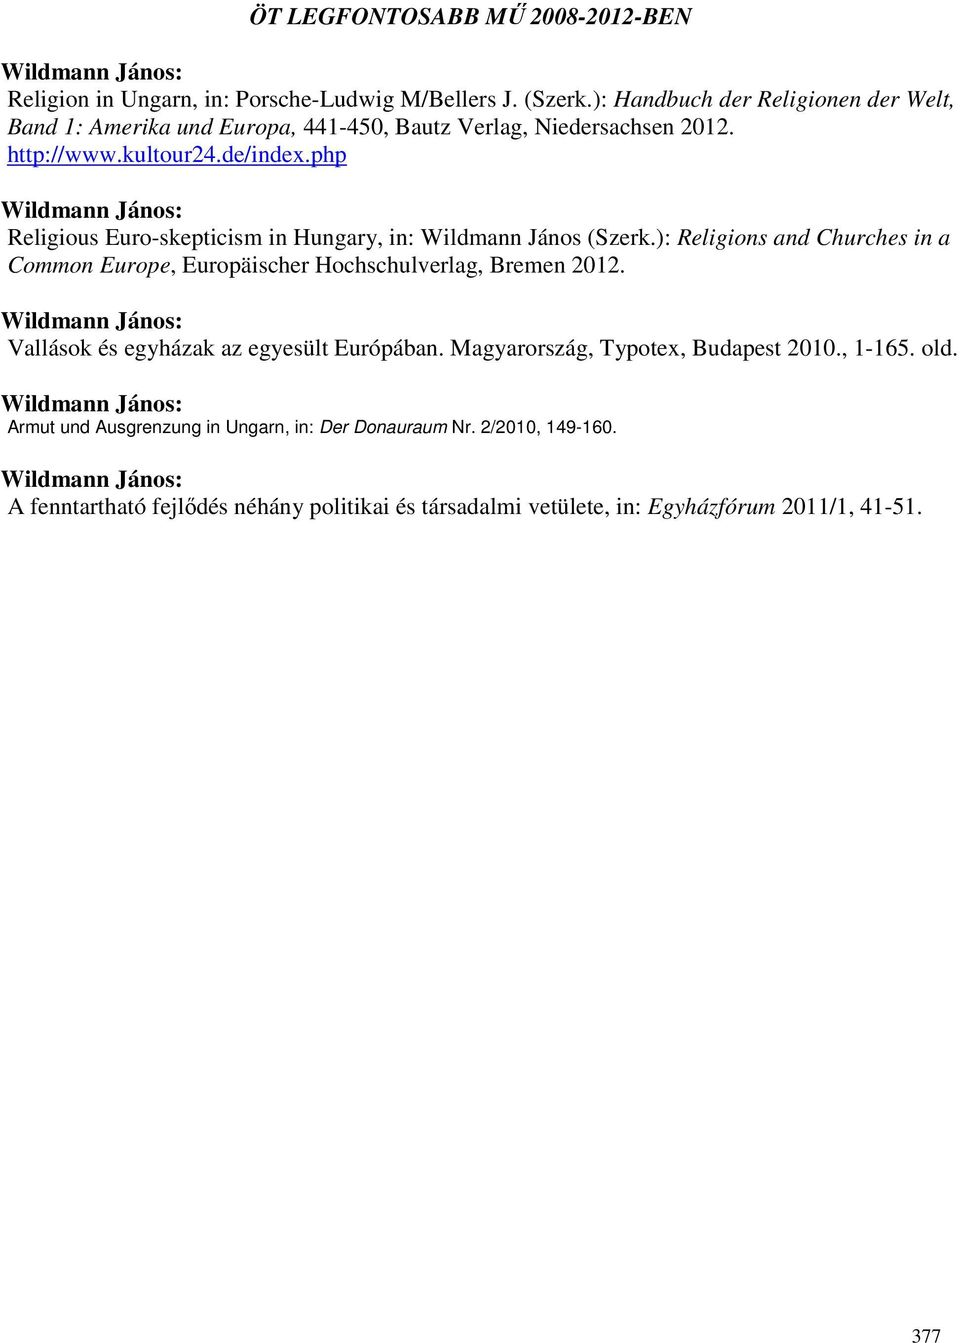 php Religious Euro-skepticism in Hungary, in: Wildmann János (Szerk.): Religions and Churches in a Common Europe, Europäischer Hochschulverlag, Bremen 2012.